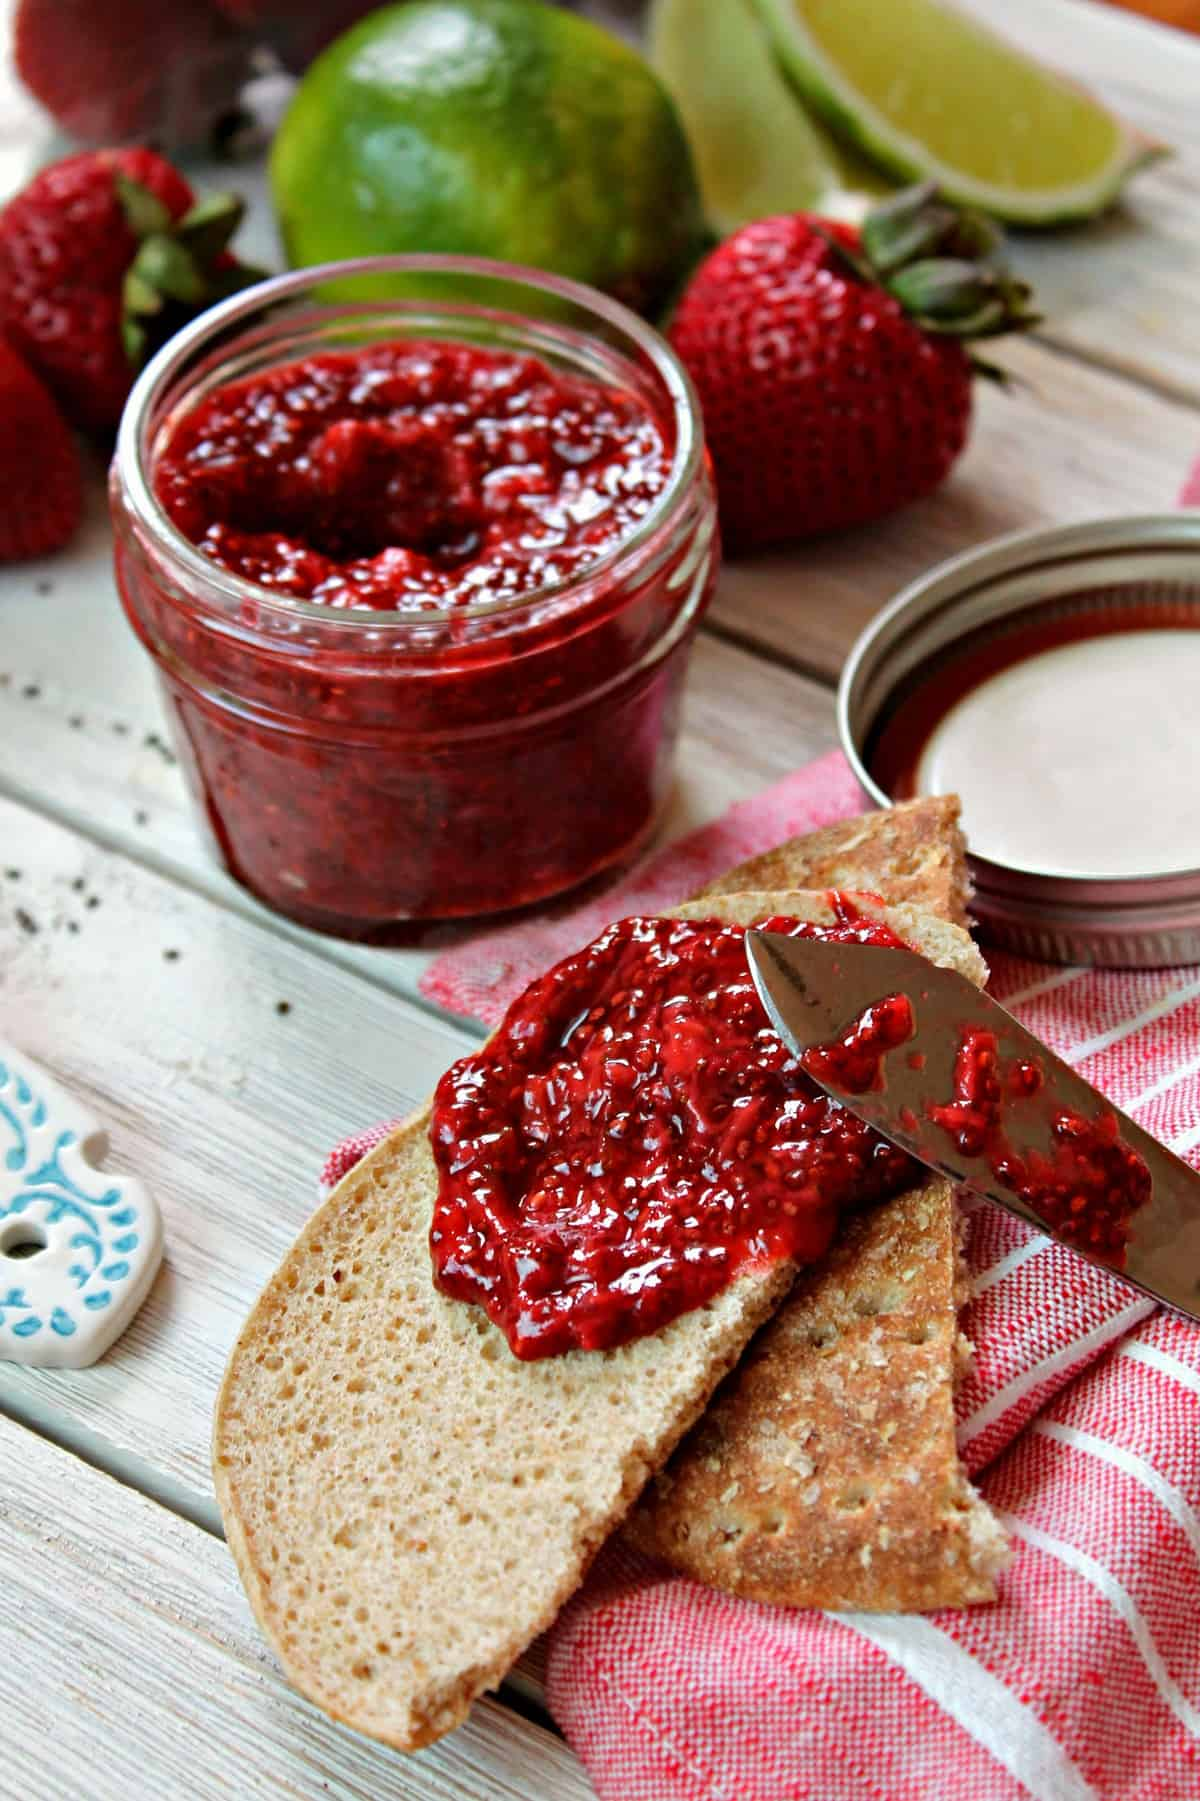 Strawberry Lime Chia Jam! Preserve the sweet, tantalizing flavors of summer with a quick, homemade jam. Chia seeds help thicken and gel this easy jam, so there's no need for pectin or excessive sugar. An easy way to enjoy berries year-round!